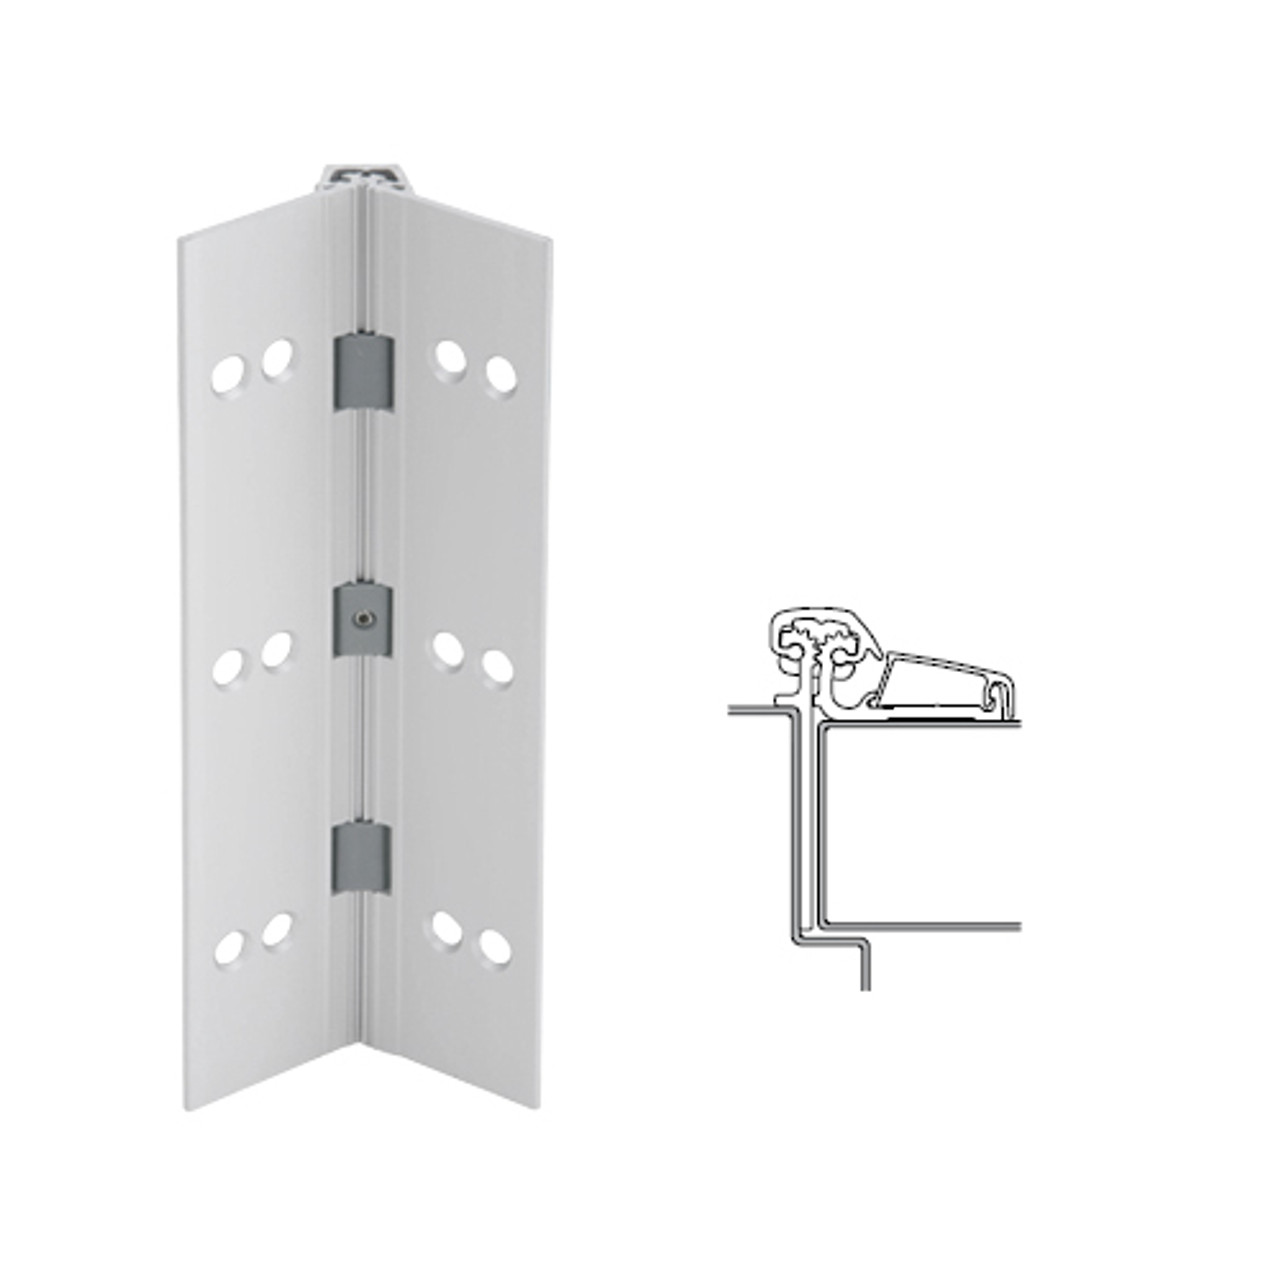 054XY-US28-120-TF IVES Adjustable Half Surface Continuous Geared Hinges with Thread Forming Screws in Satin Aluminum